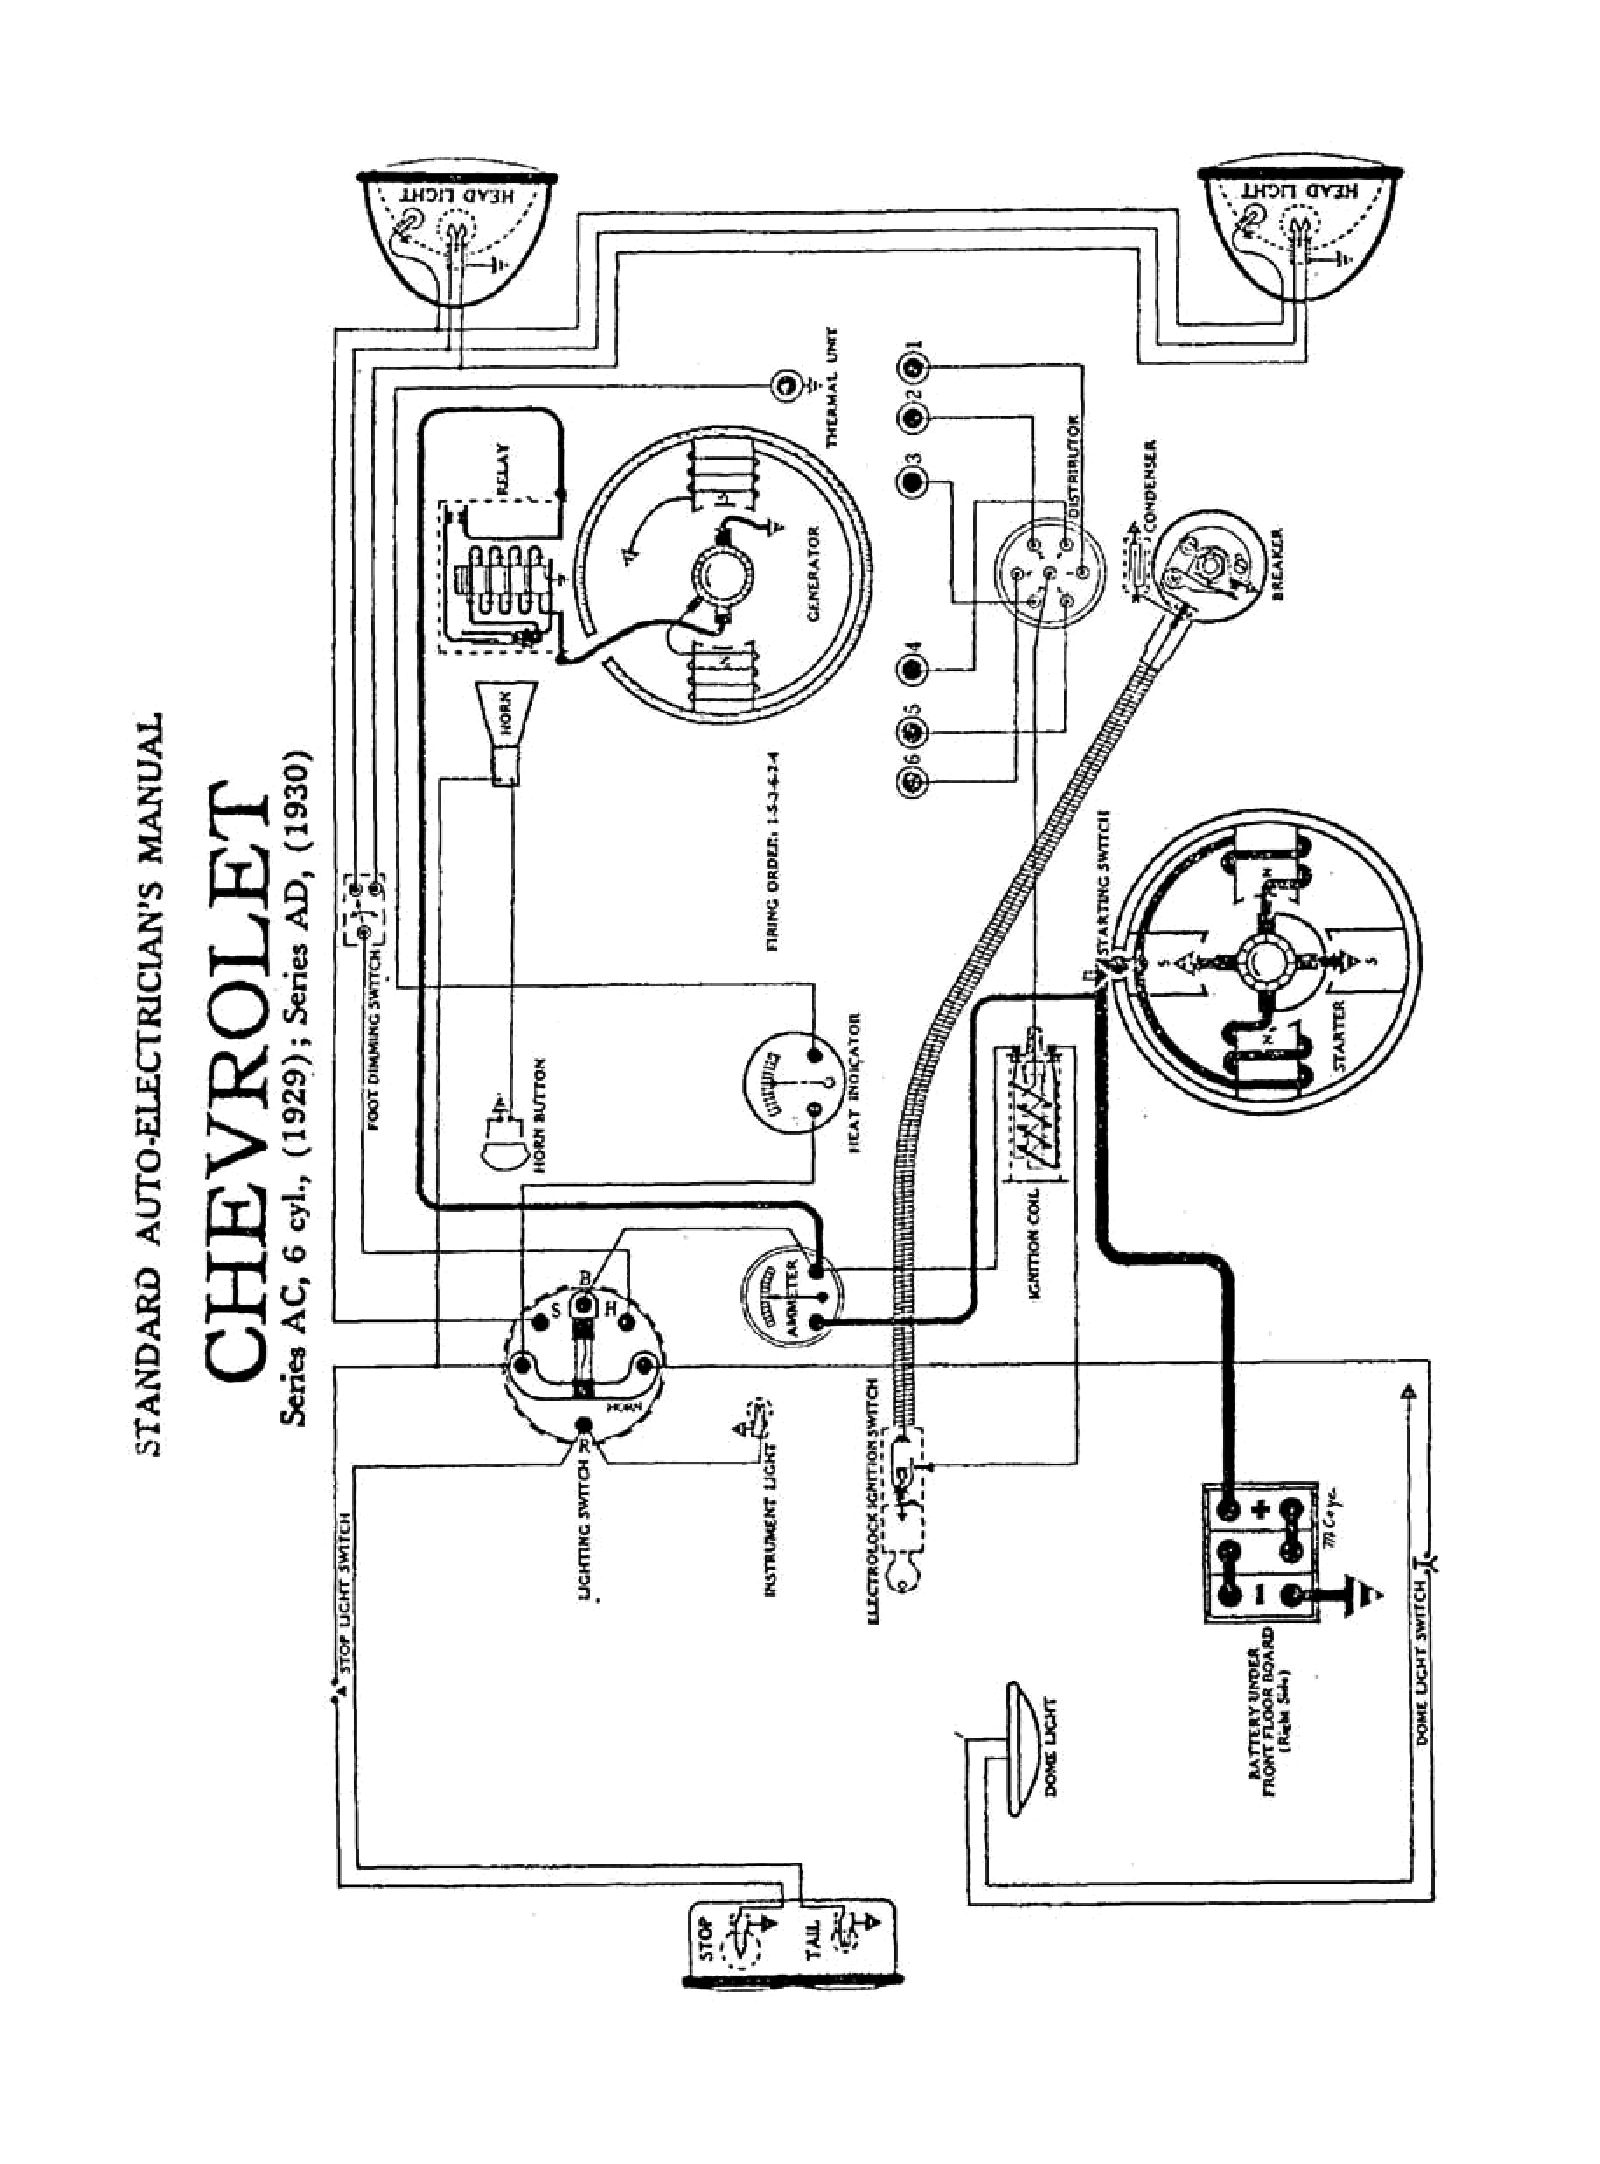 1931 Buick Wiring Diagram Data Diagrams For Regal Ford Free